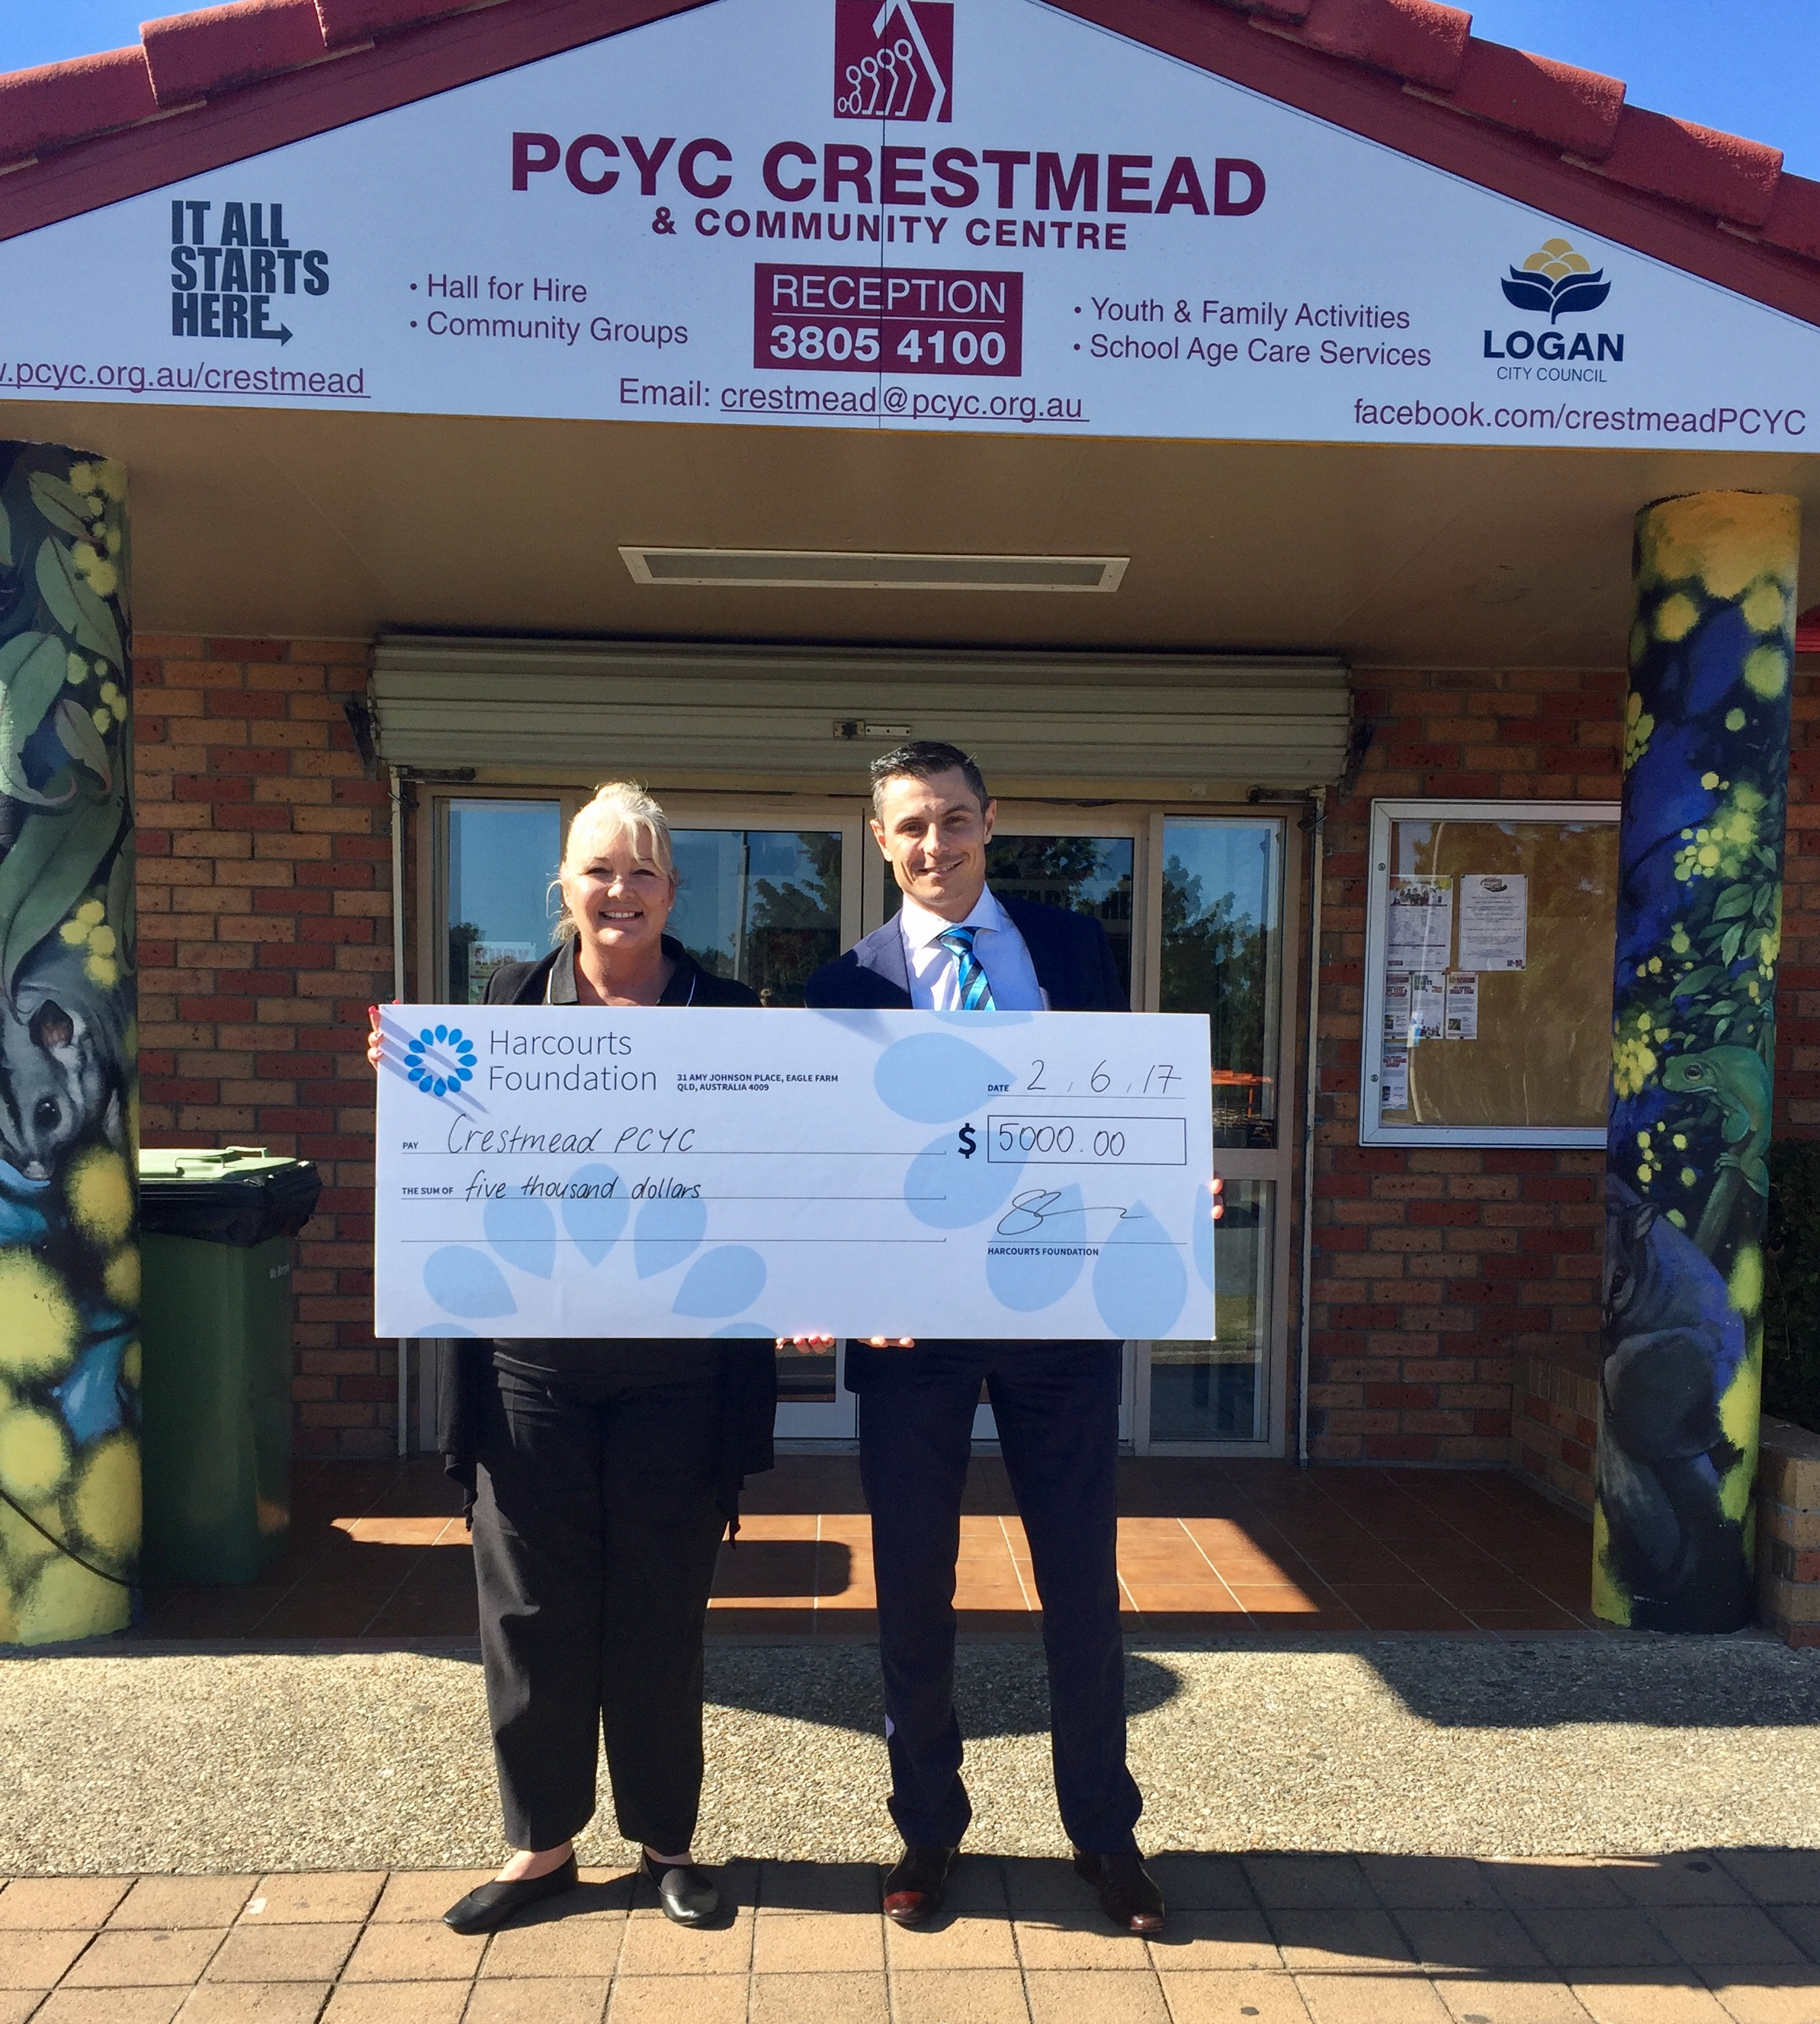 Foundation_PCYC Crestmead big cheque.jpg